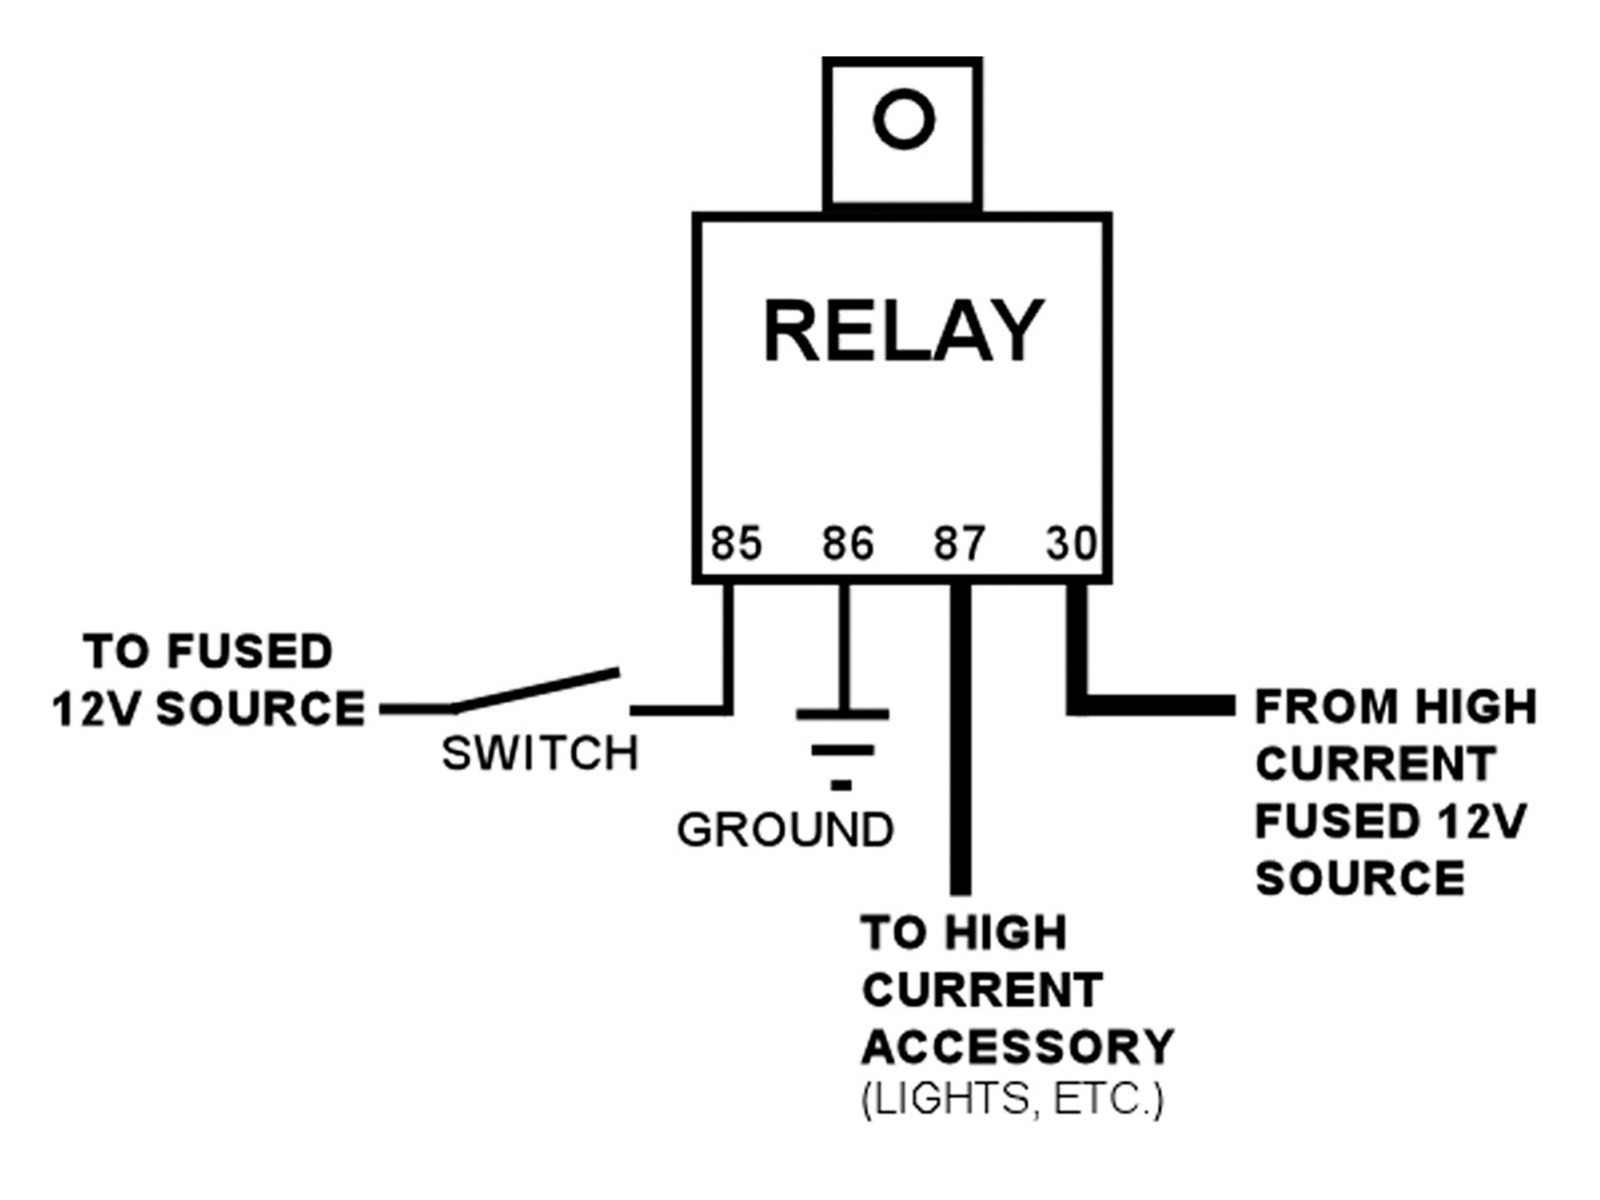 wiring diagram as well basic relay wiring diagram on wiring diagram